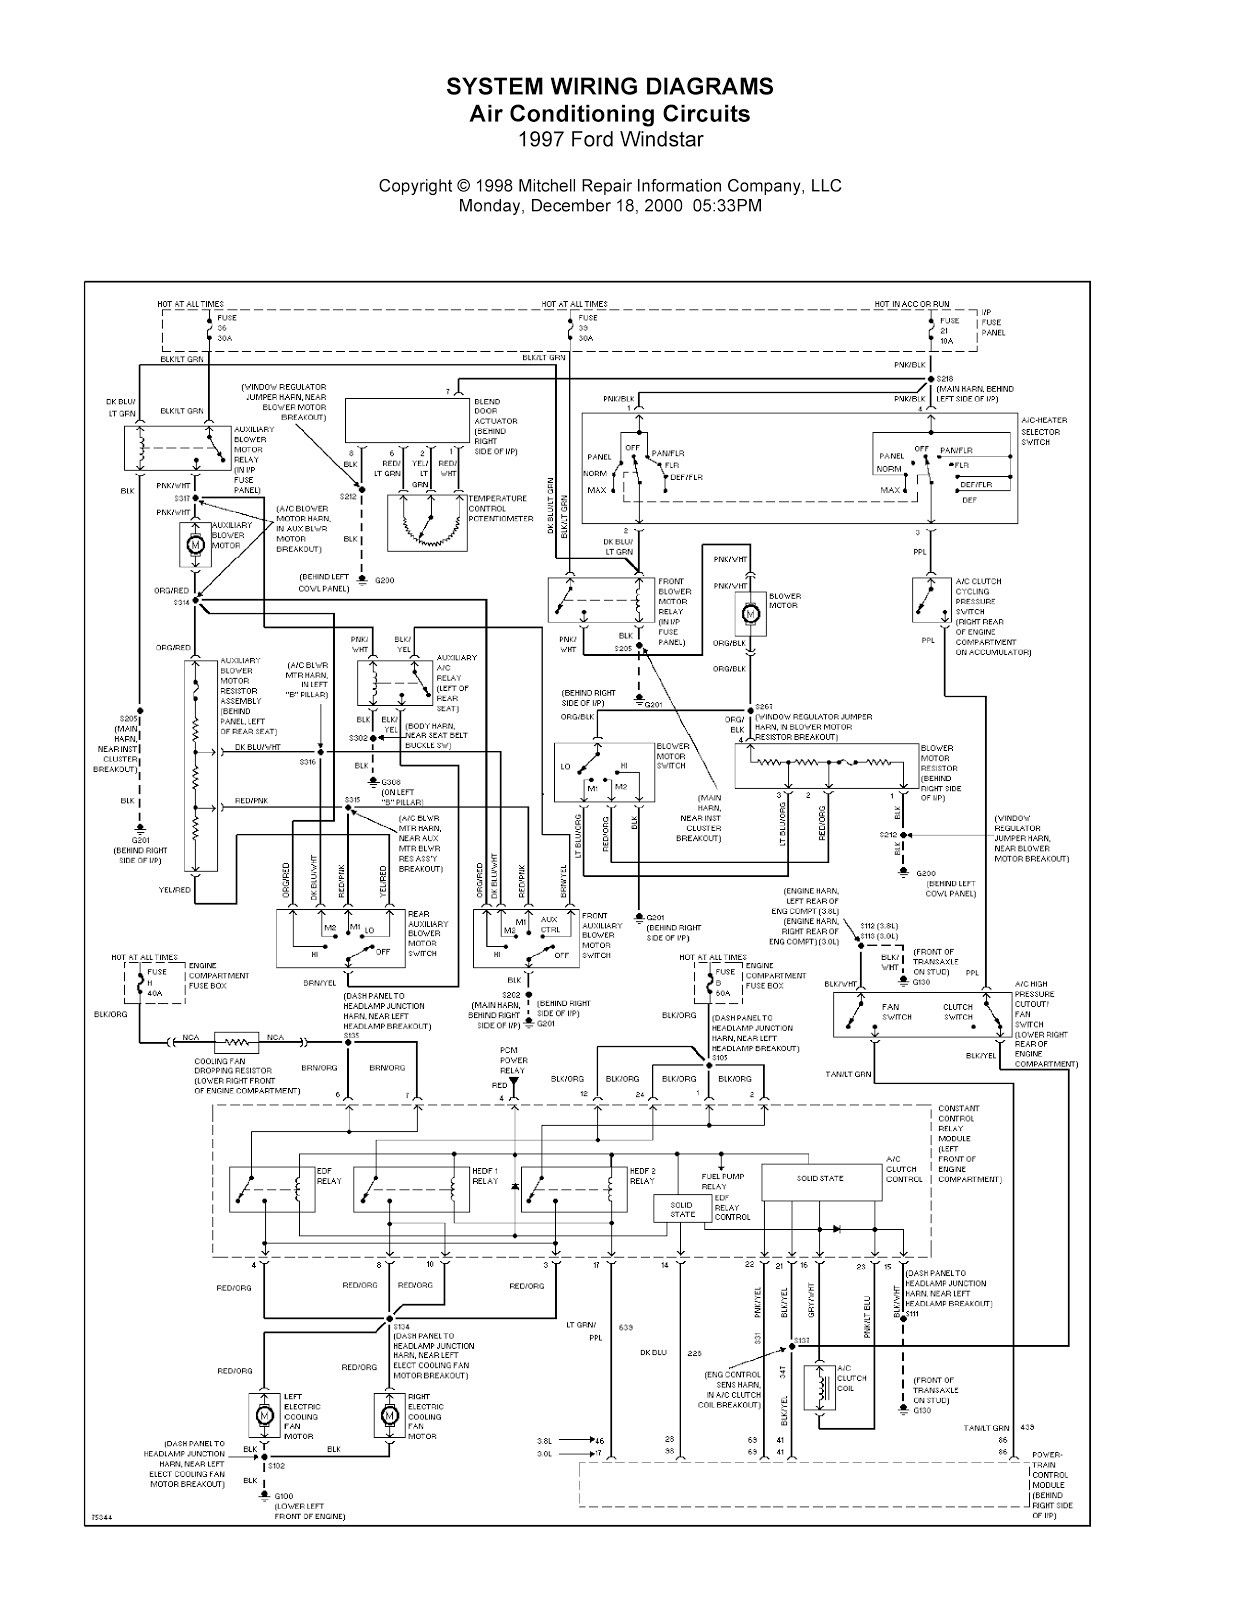 Wiring Diagram PDF: 2003 Expedition Wiring Schematic